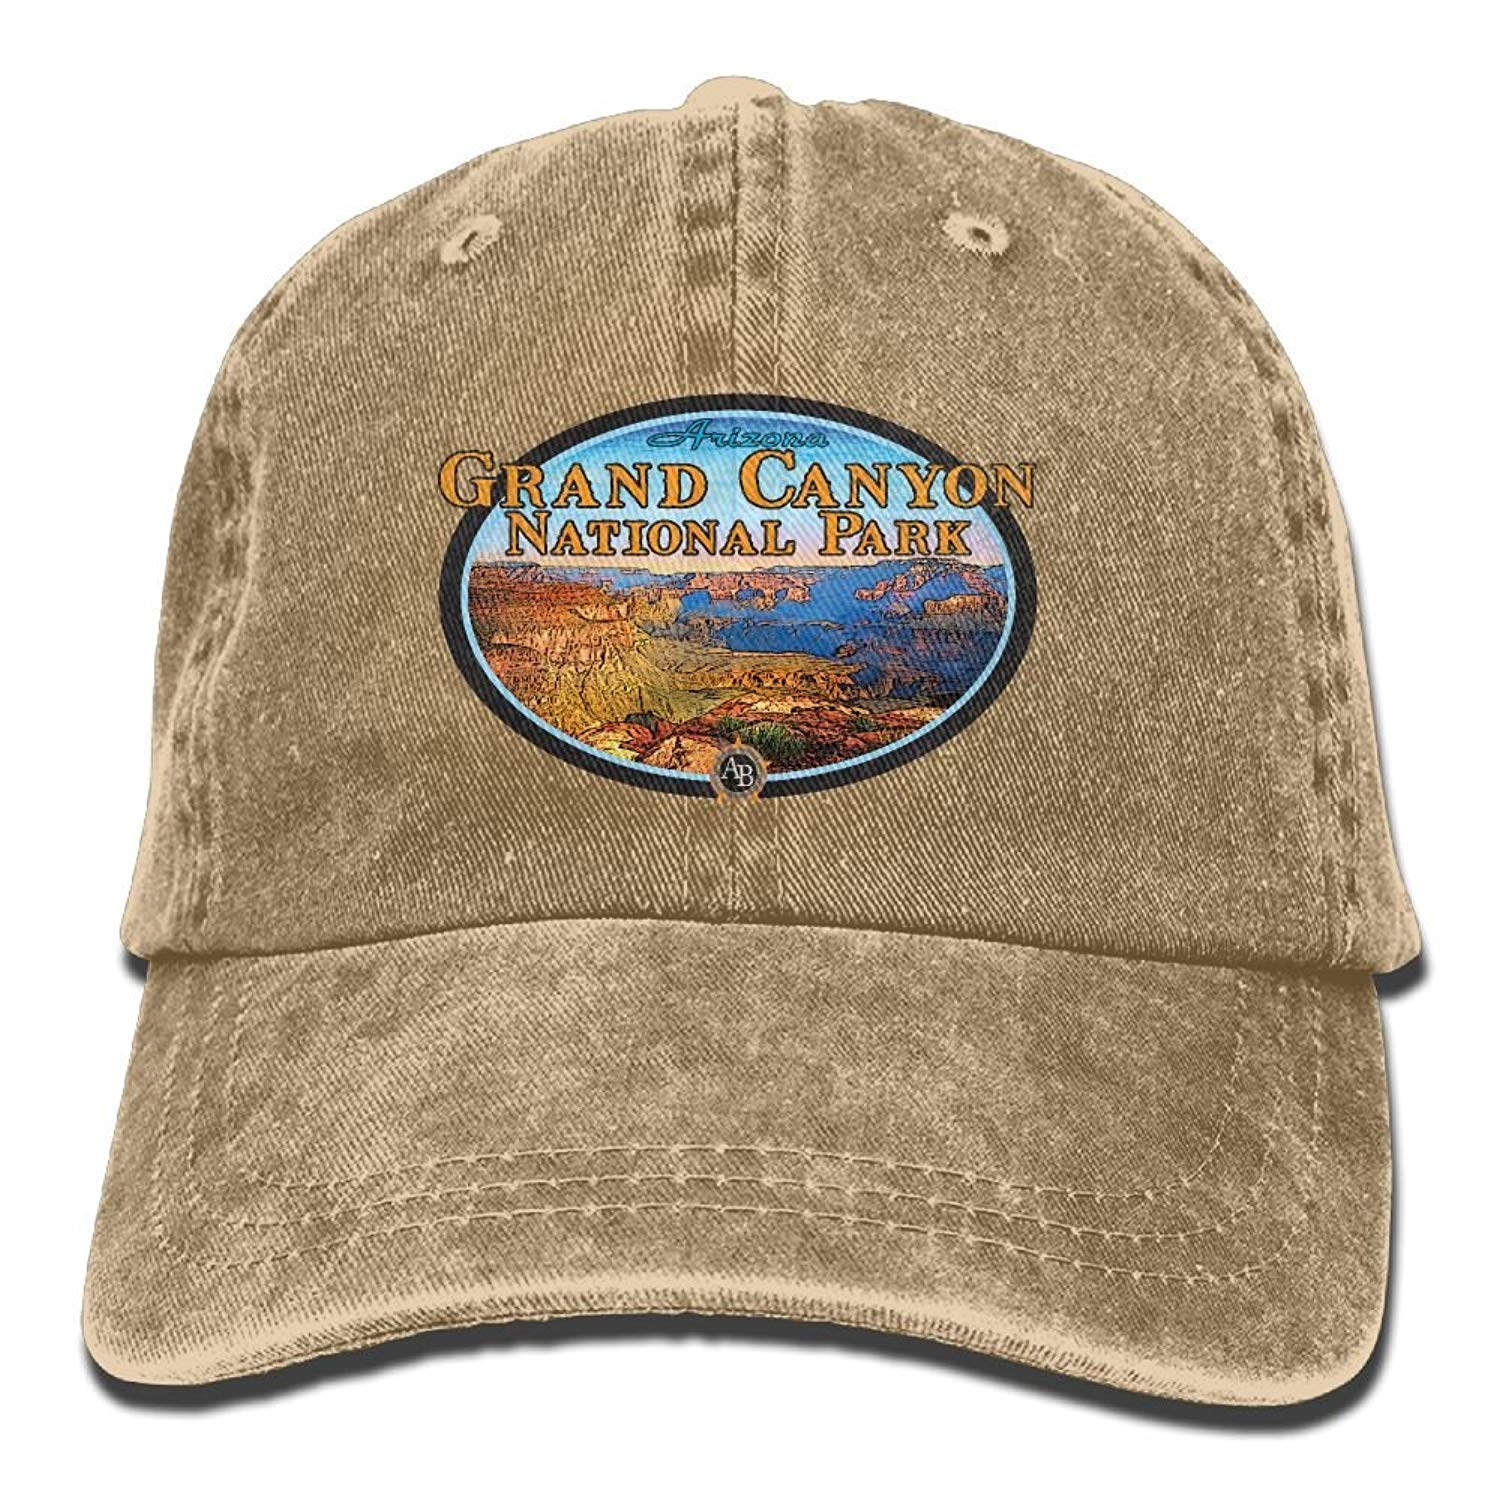 JTRVW Cowboy Hats Grand Canyon National Park Unisex Denim Baseball Cap Adjustable Strap Low Profile Plain Hats Outdoor Casquette Snapback Hats Ash